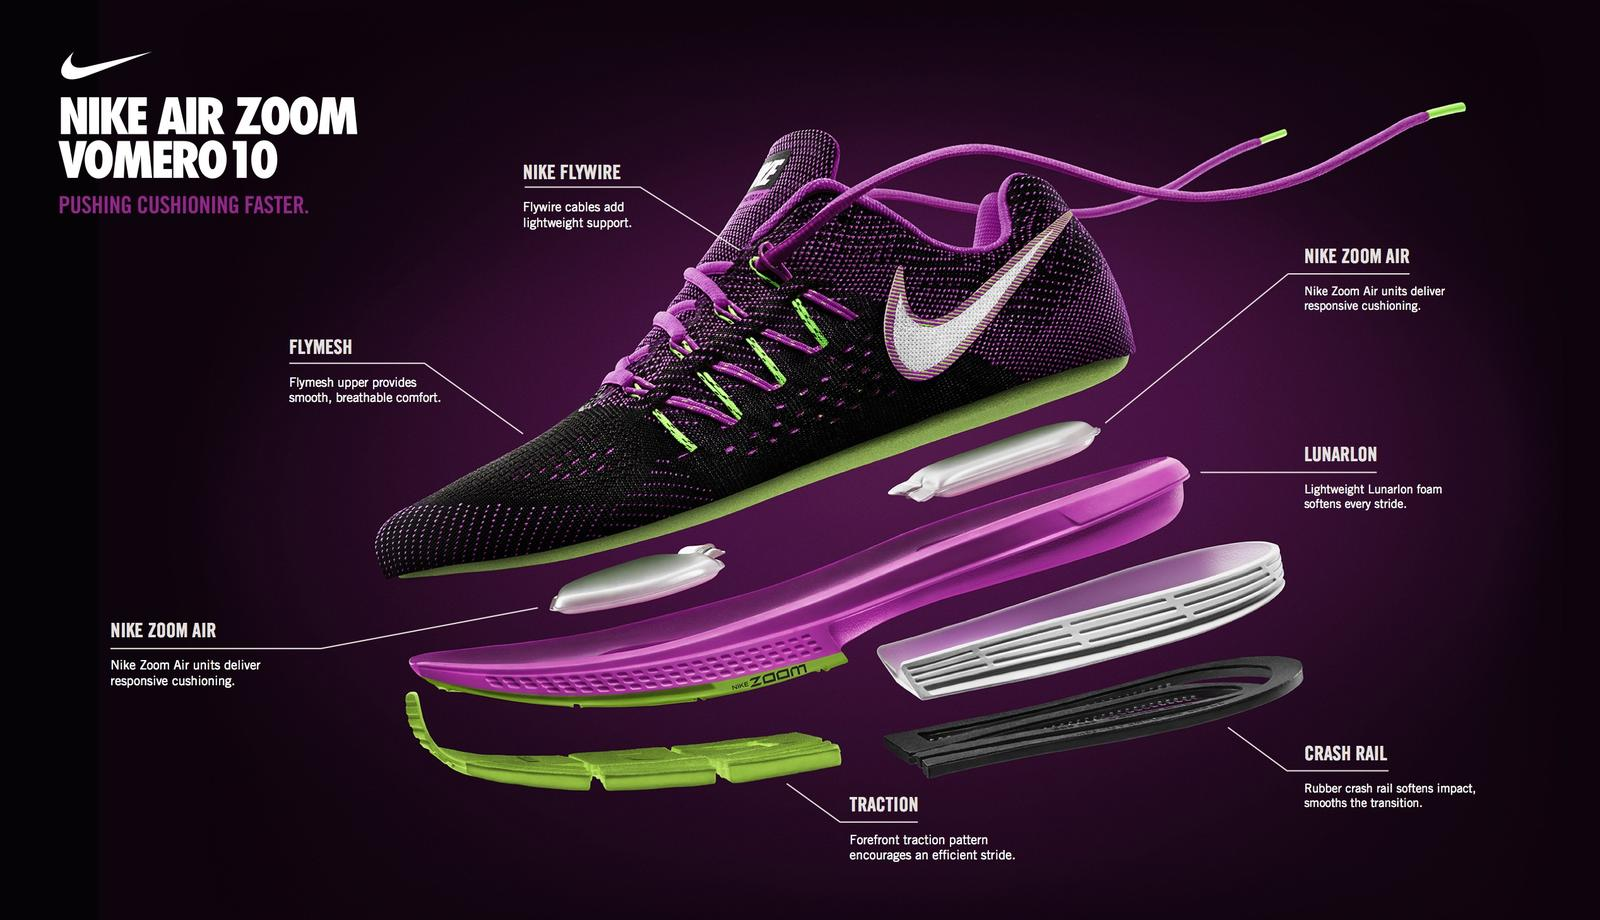 a9c4f2bc88d9 Nike Air Zoom Vomero 10  The Feeling Feet Dream About - Nike News